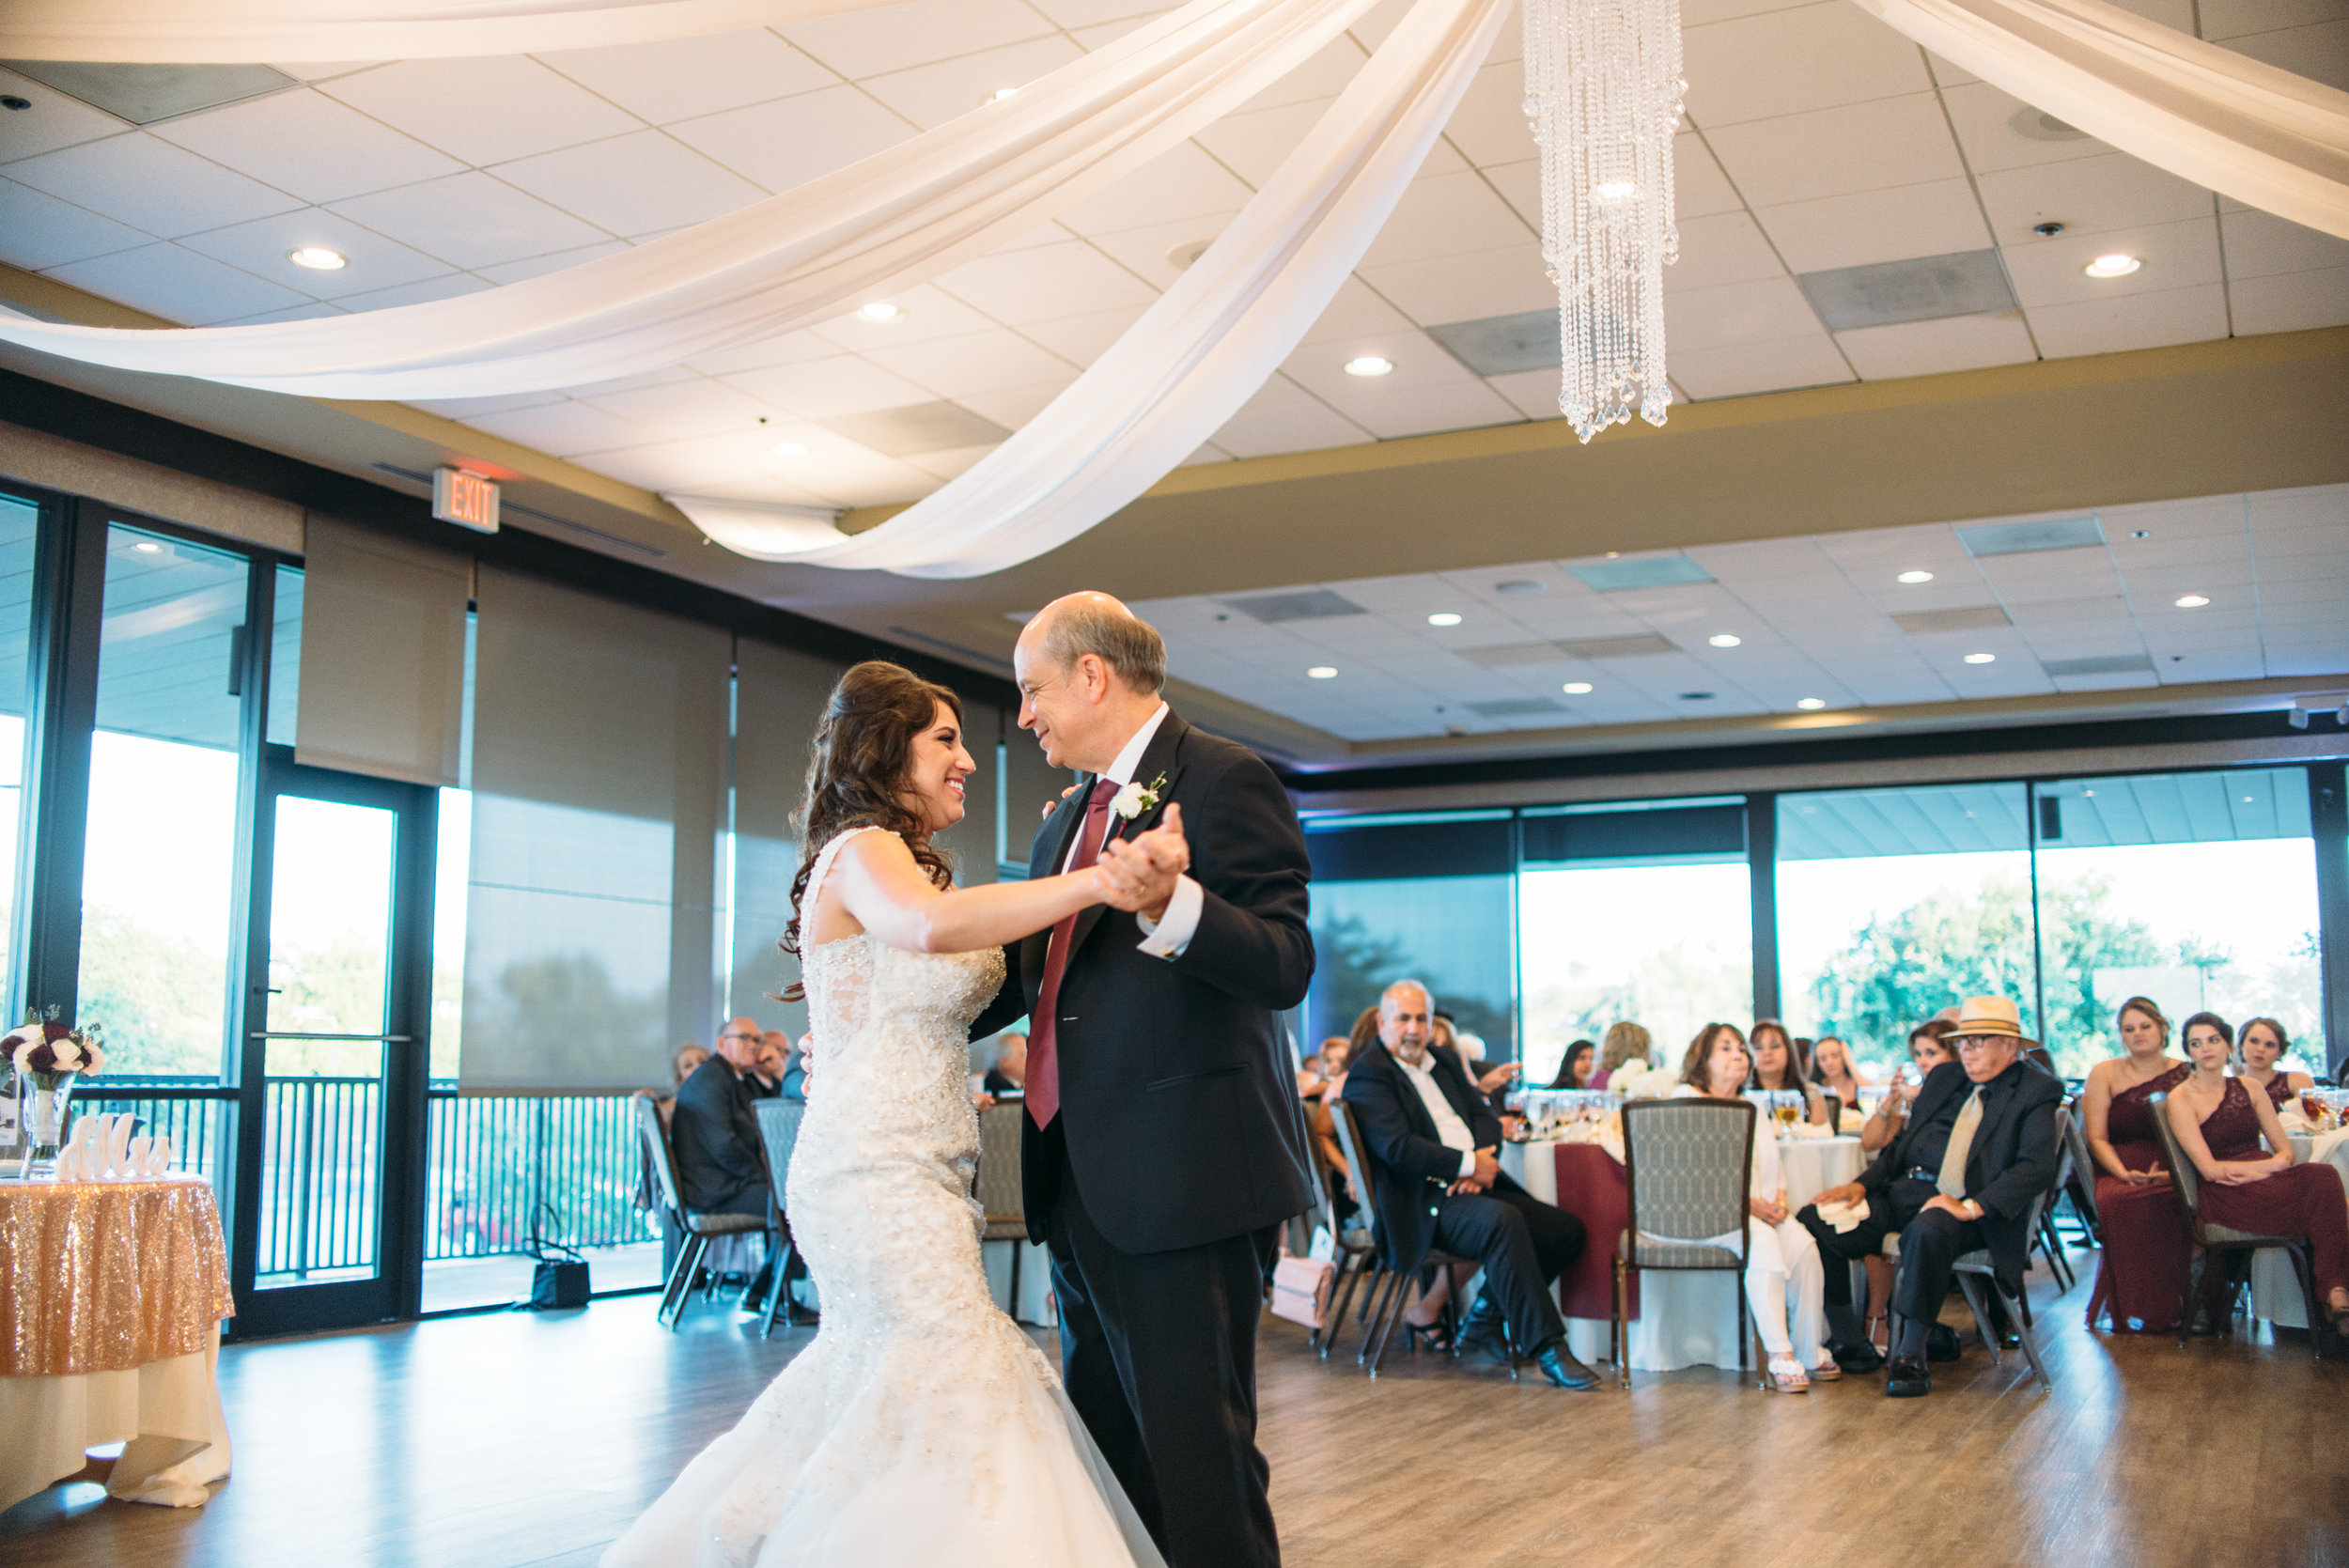 PhillipsEventCenter-AggieWedding-CollegeStationPhotographer_45.jpg